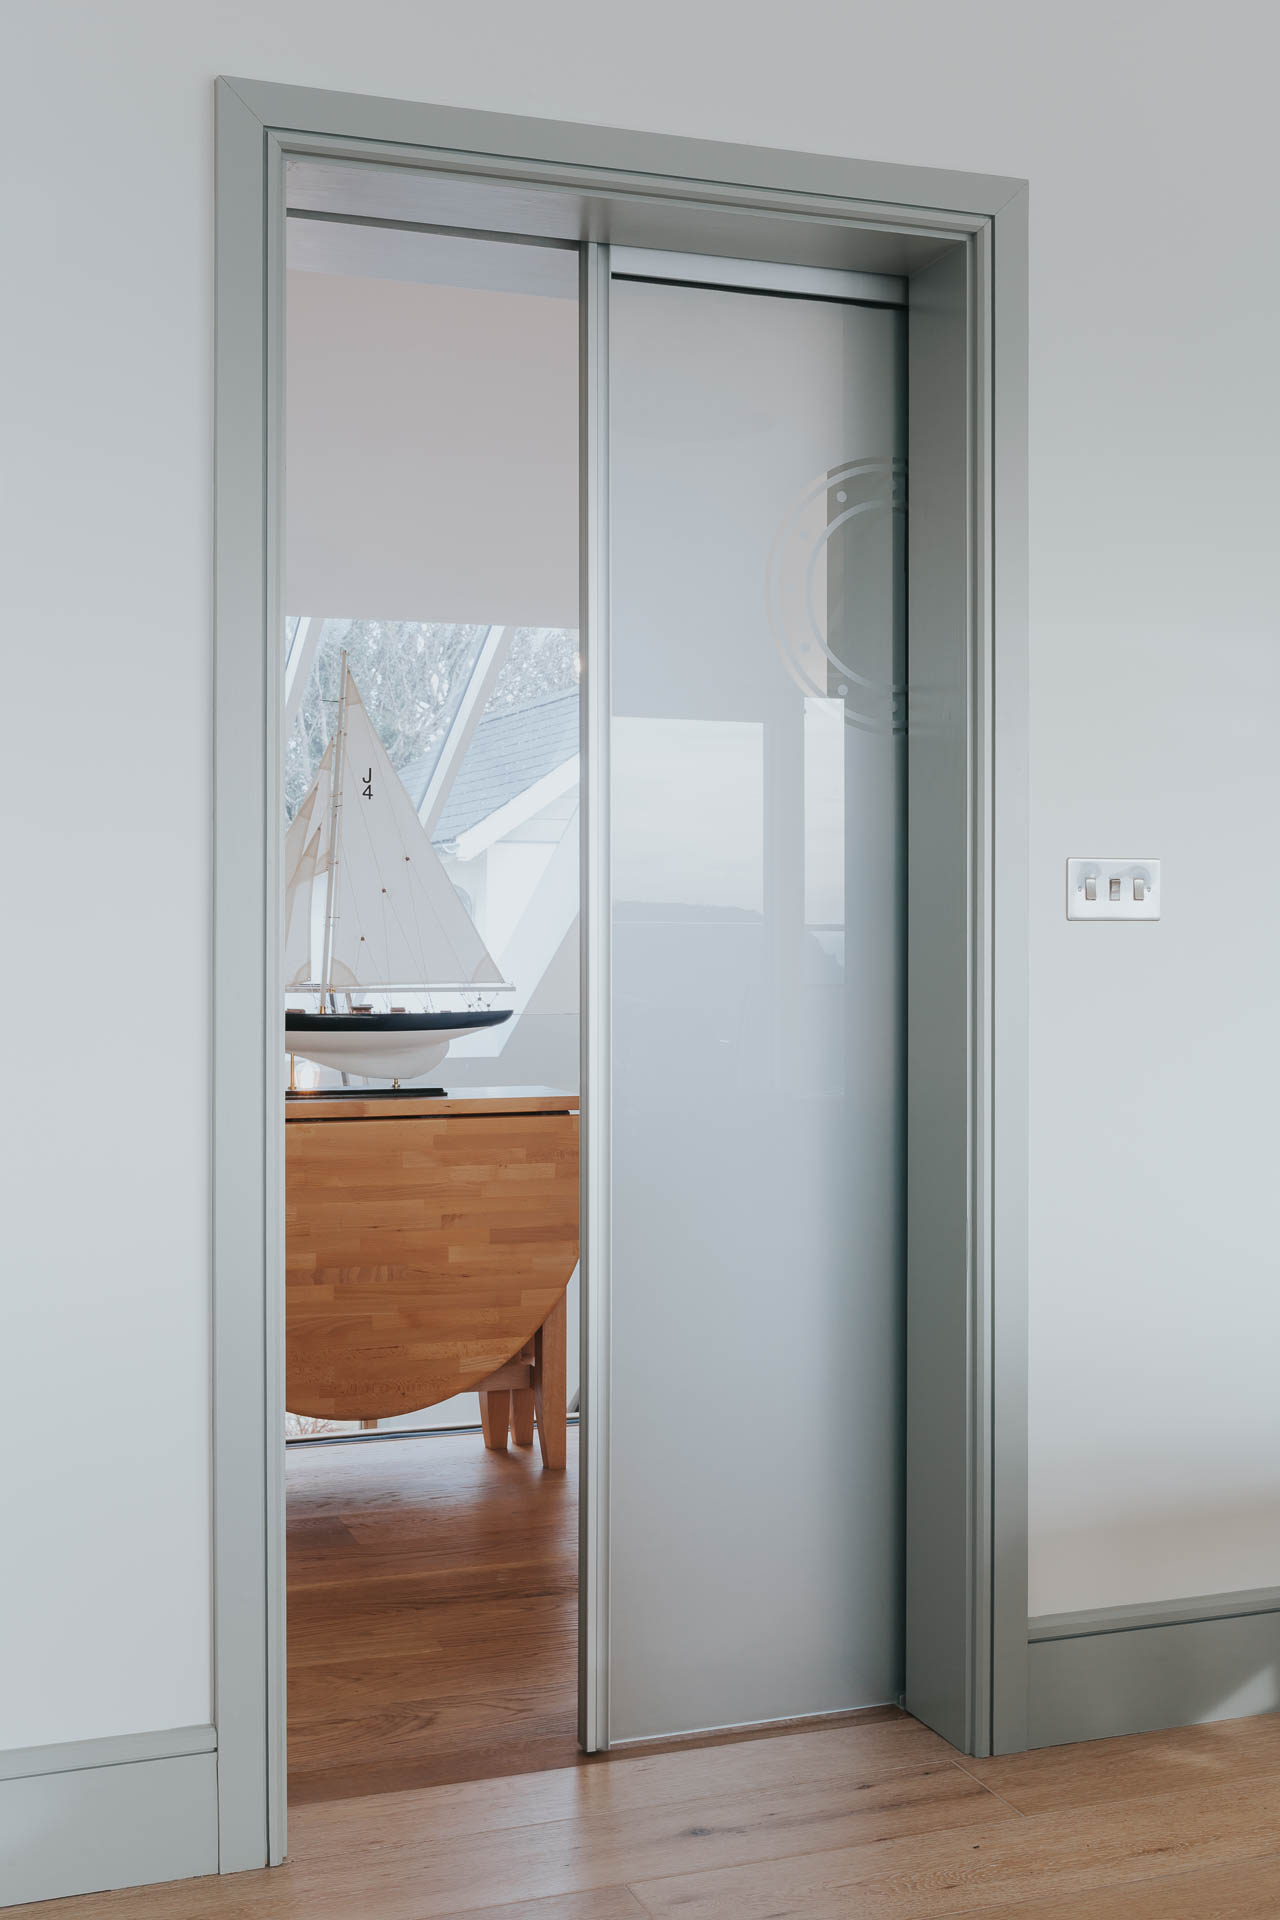 bespoke sliding pocket door with opaque glass by architects in salcombe andrew lethbridge associates